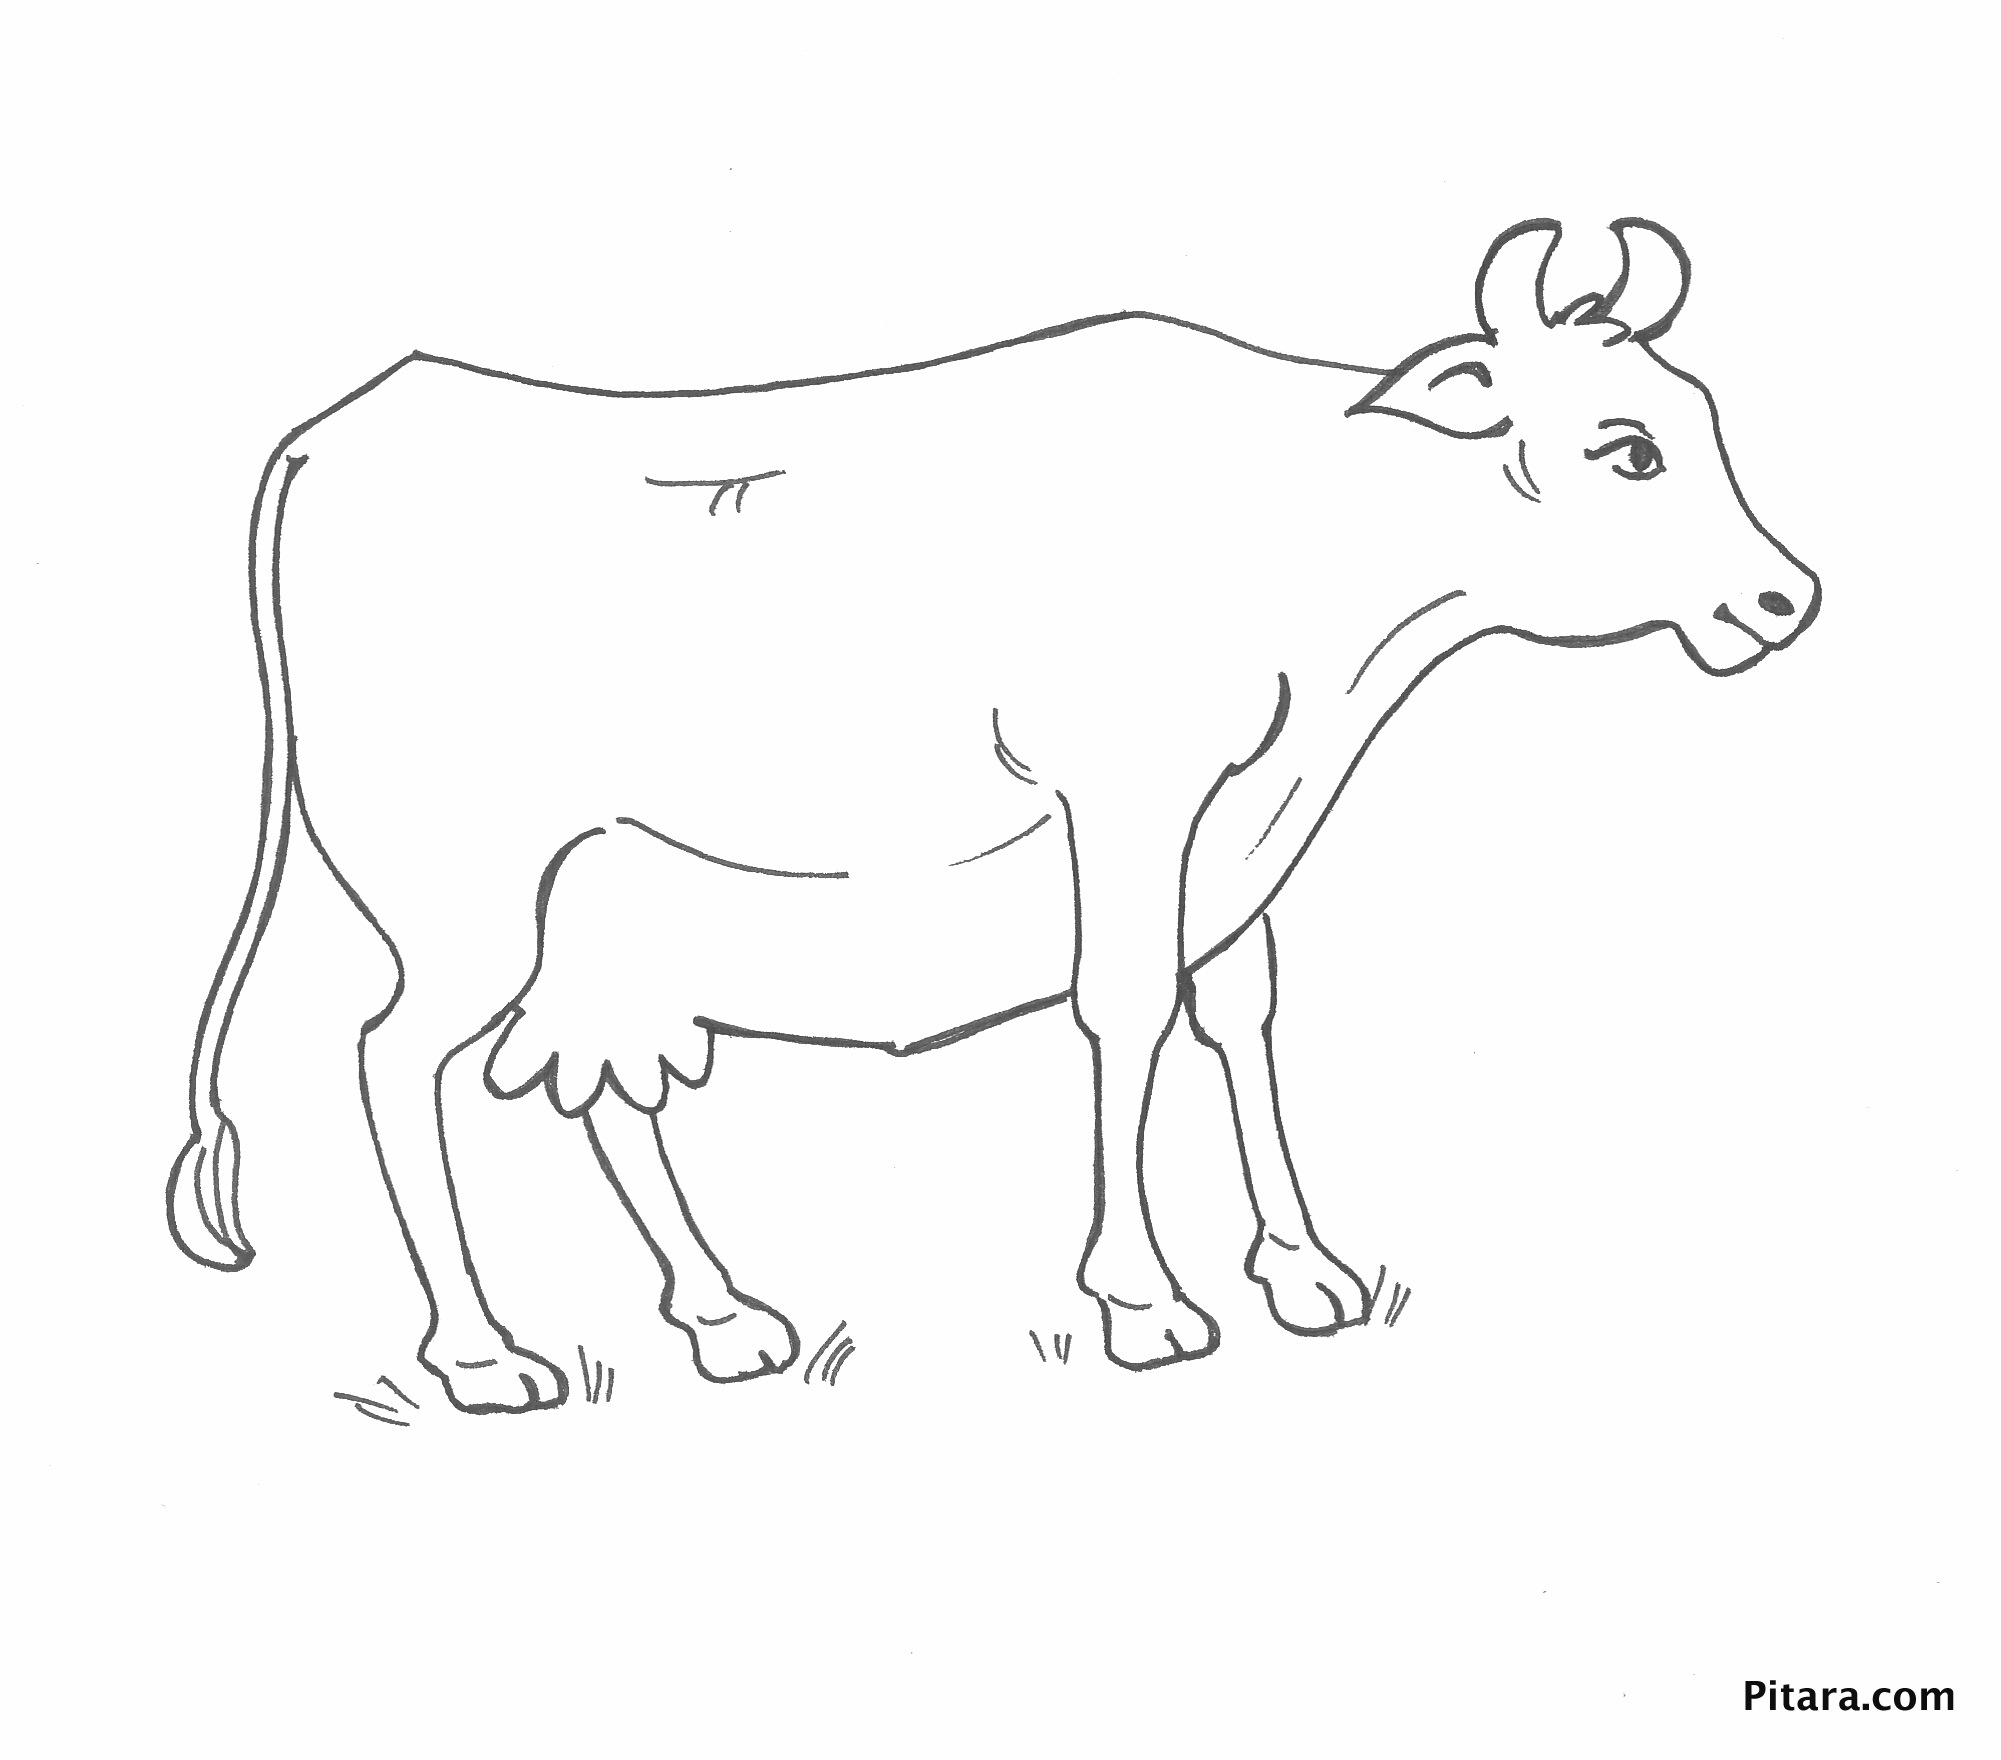 cow u2013 coloring page pitara kids network